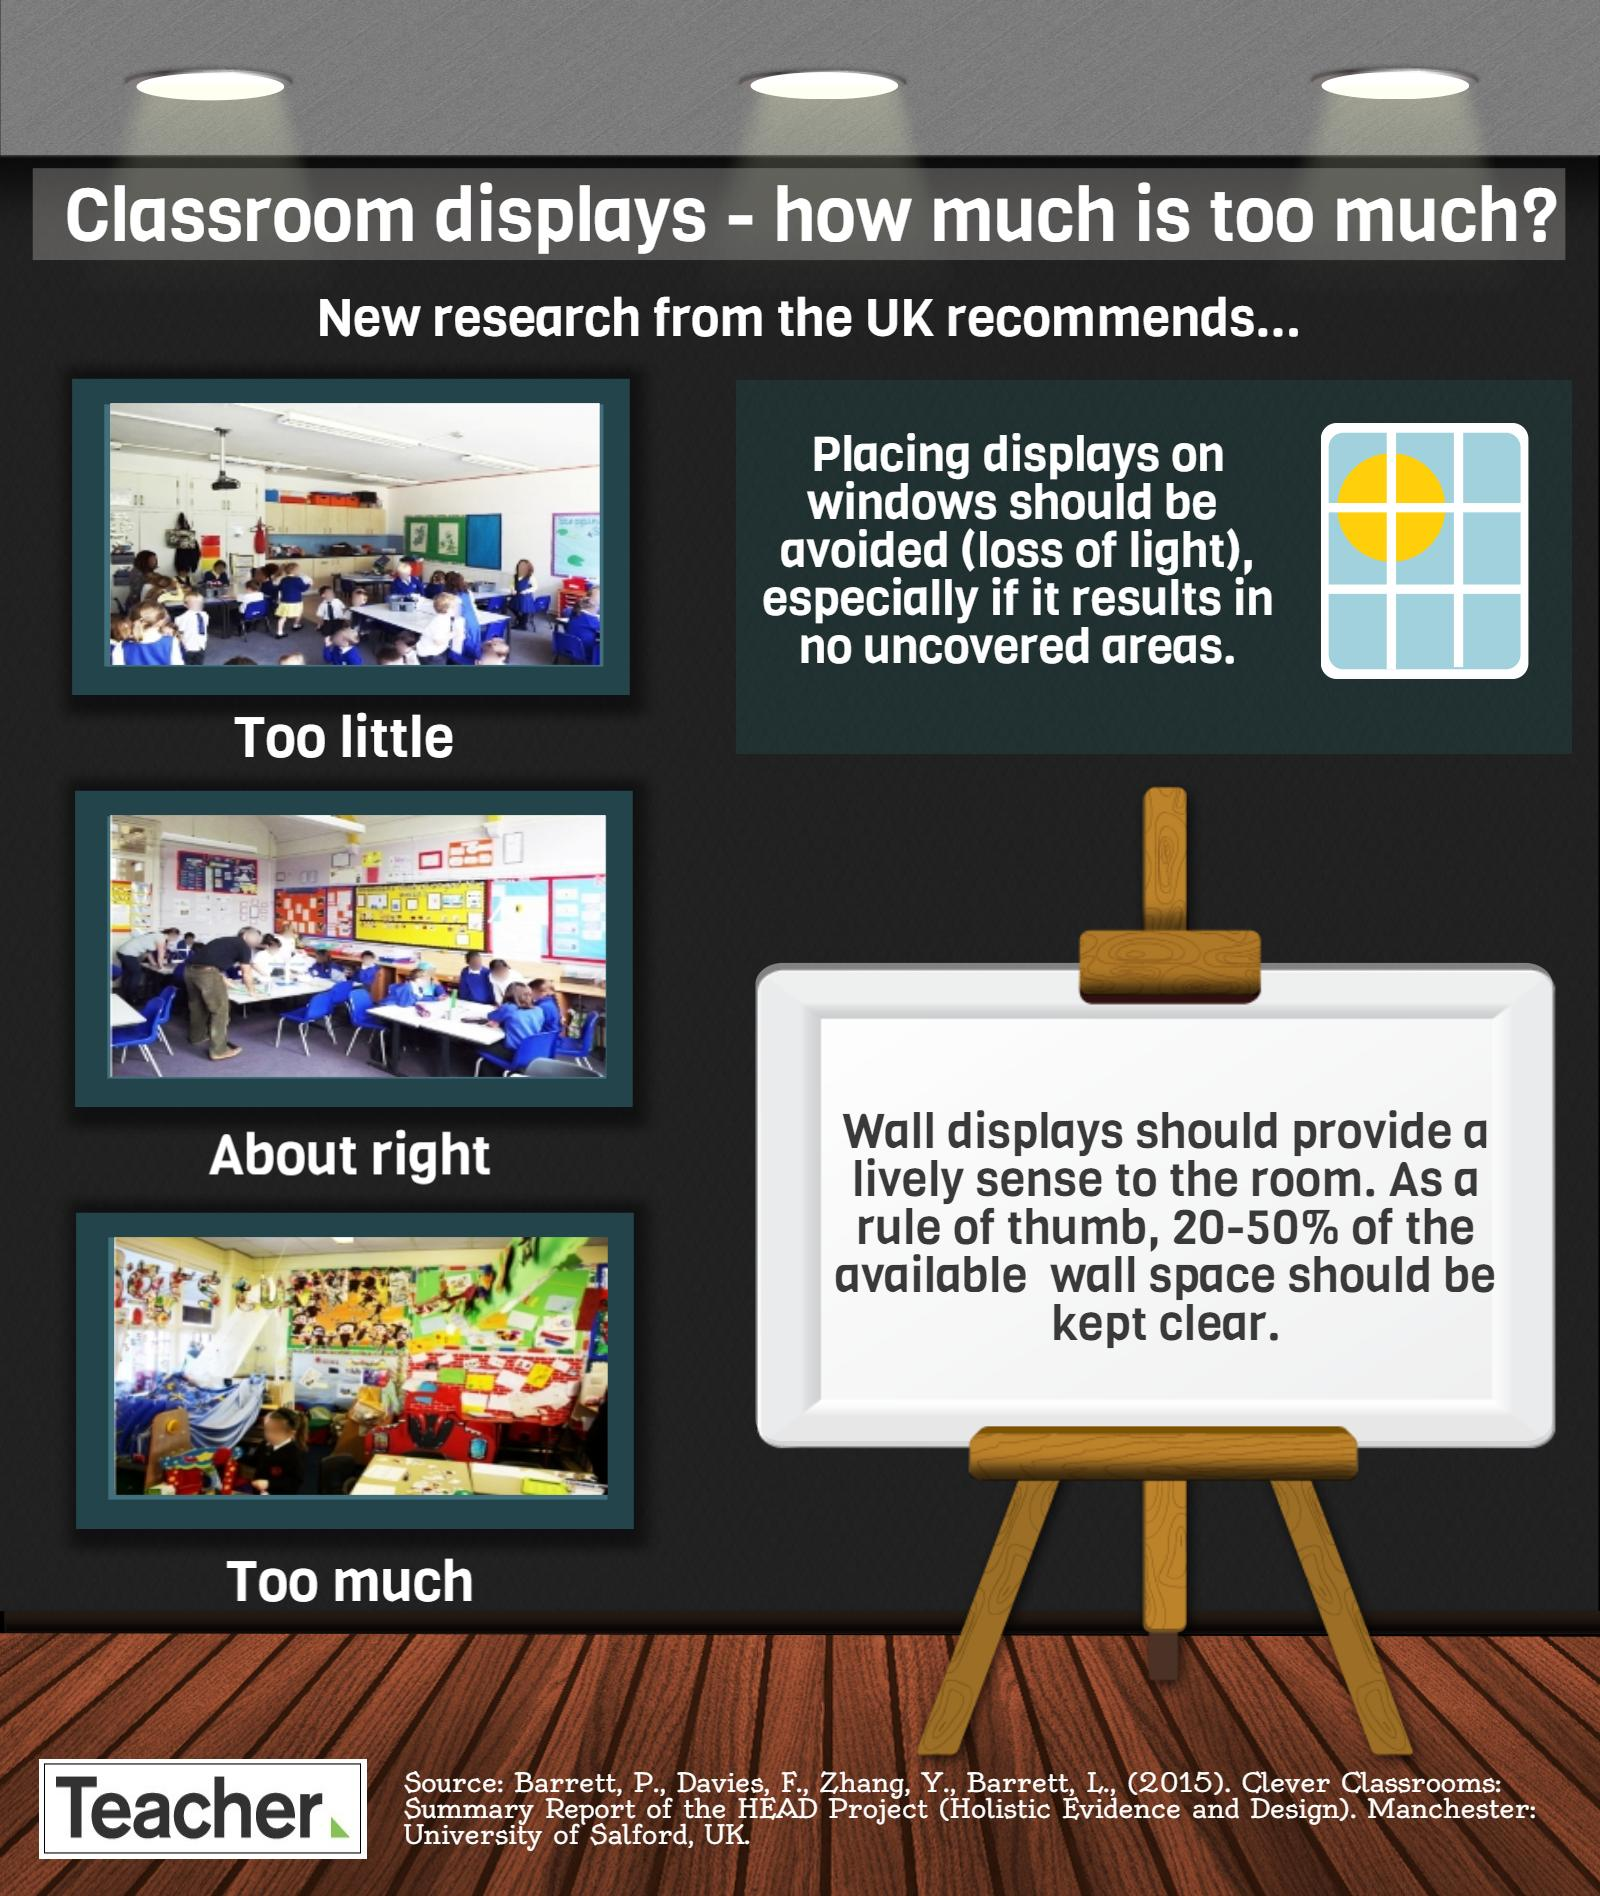 Classroom displays - how much is too much?